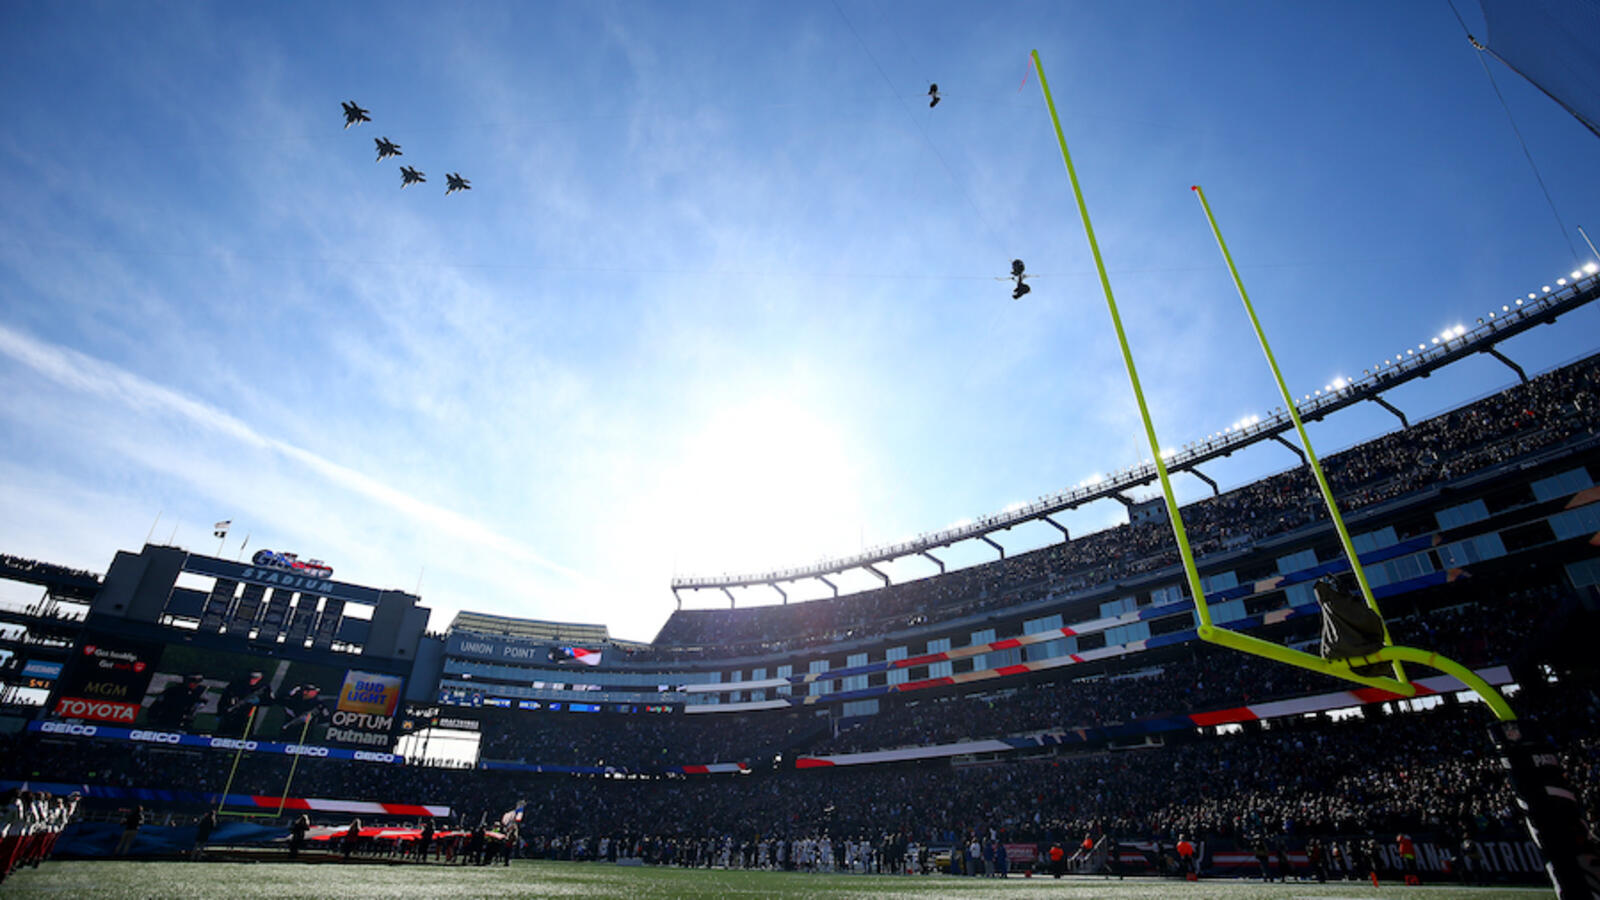 Some MetroWest Residents Unnerved By Patriots Flyover During 9/11 Weekend